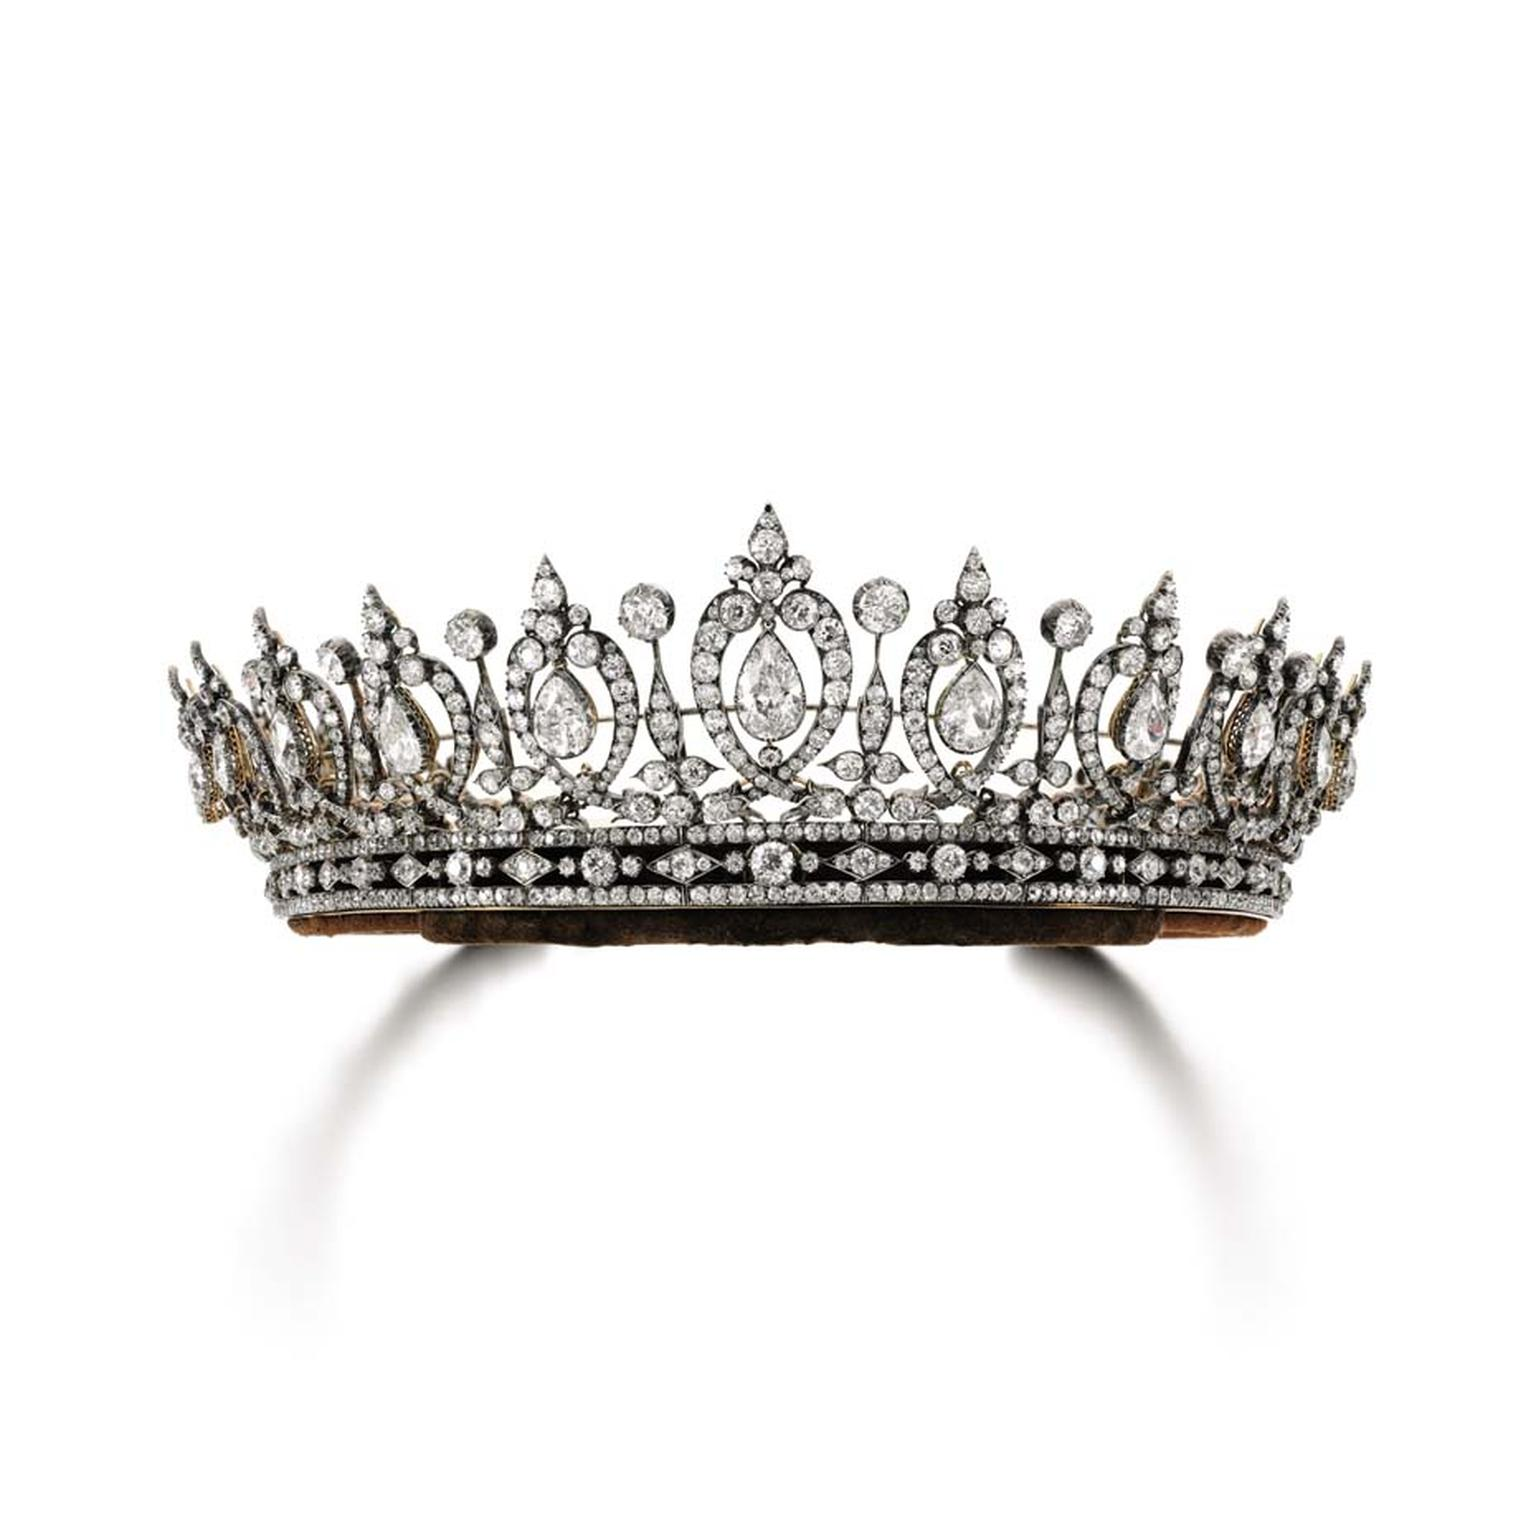 A 19th century diamond tiara belonging to the Duchess of Roxburghe went under the hammer for $848,326 after an intense bidding battle.